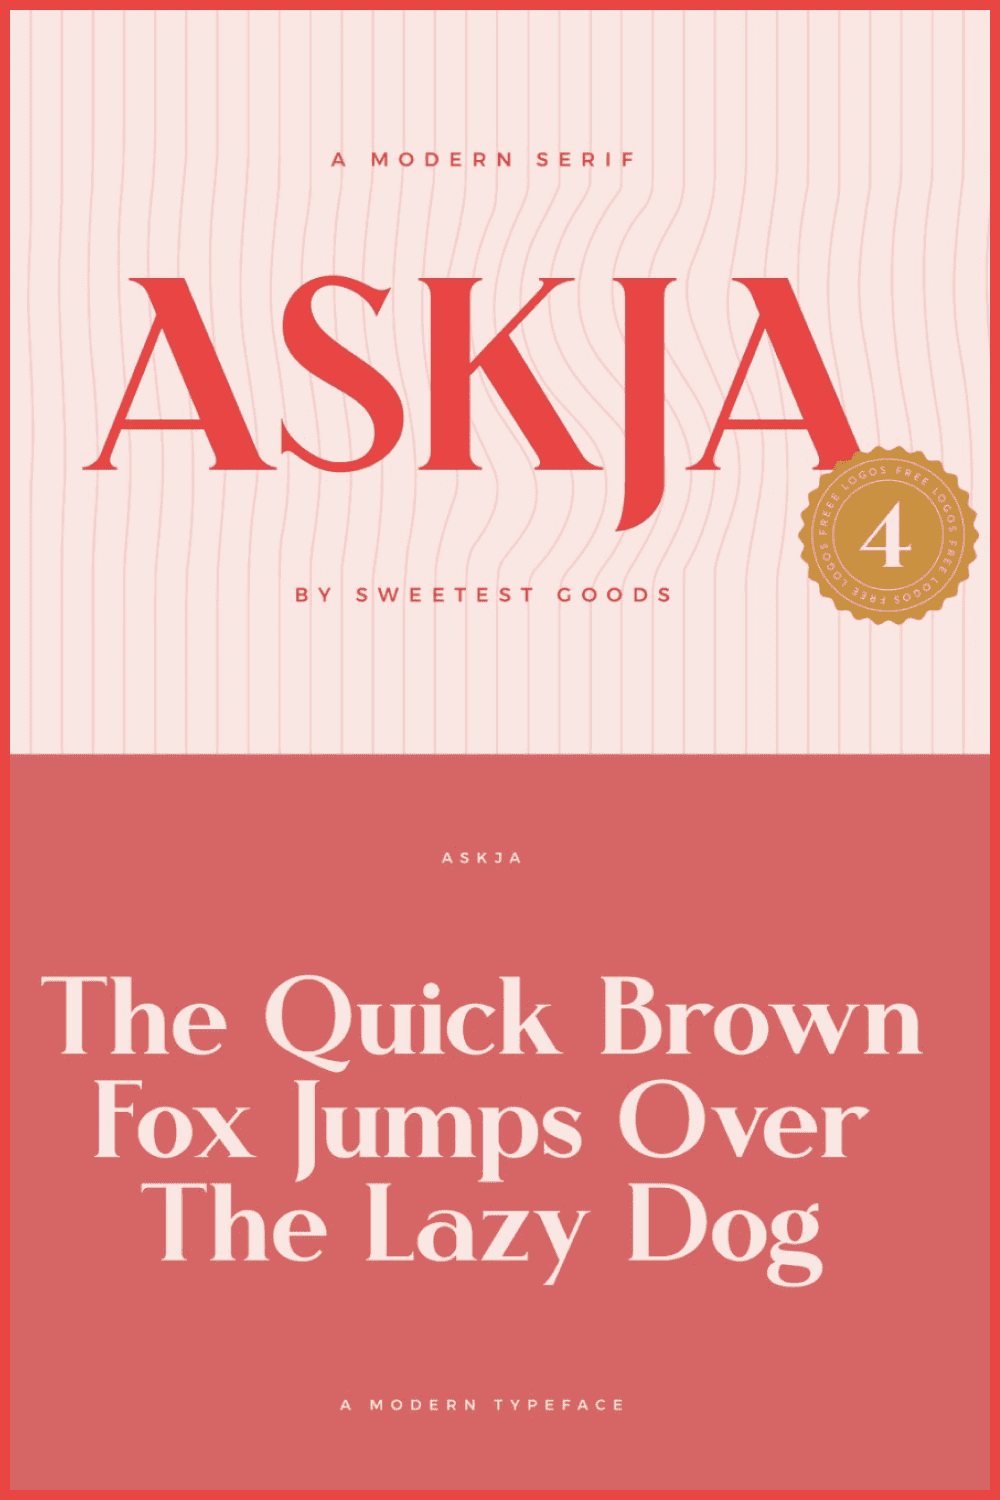 Askja is a unique, decorative typeface, loosely inspired by Art Nouveau but with a fresh and modern approach.